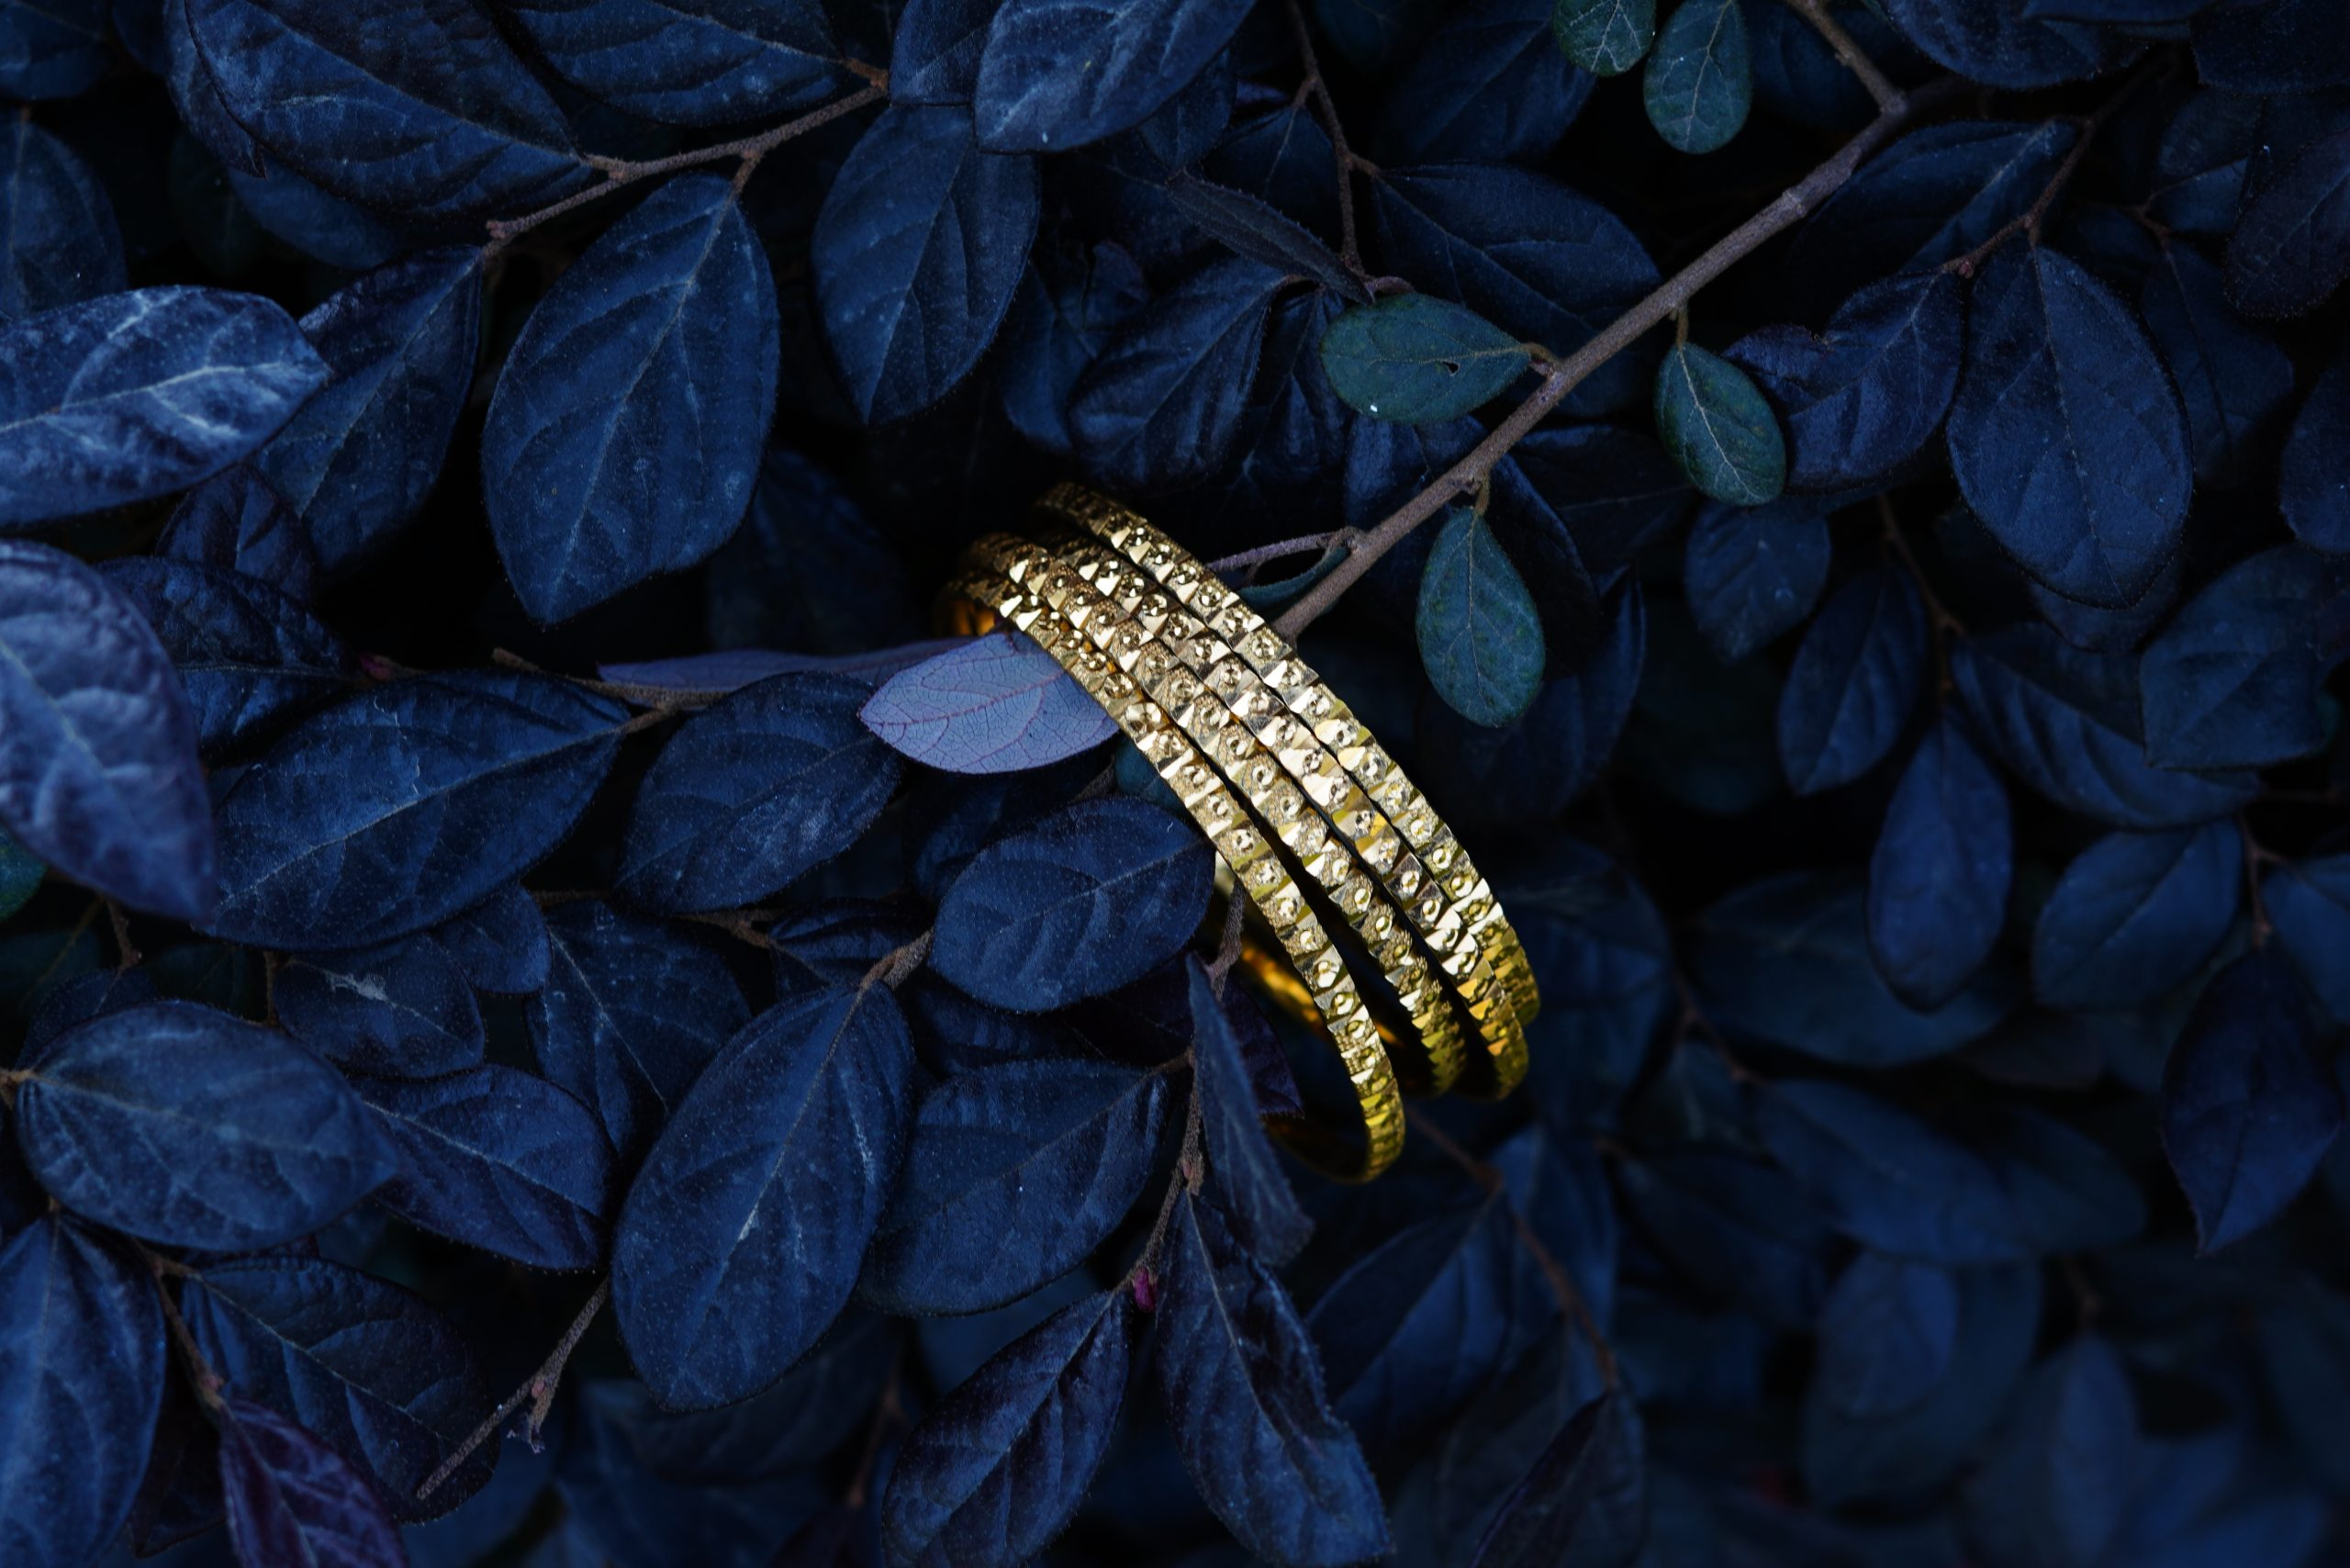 Golden bangles and leaves